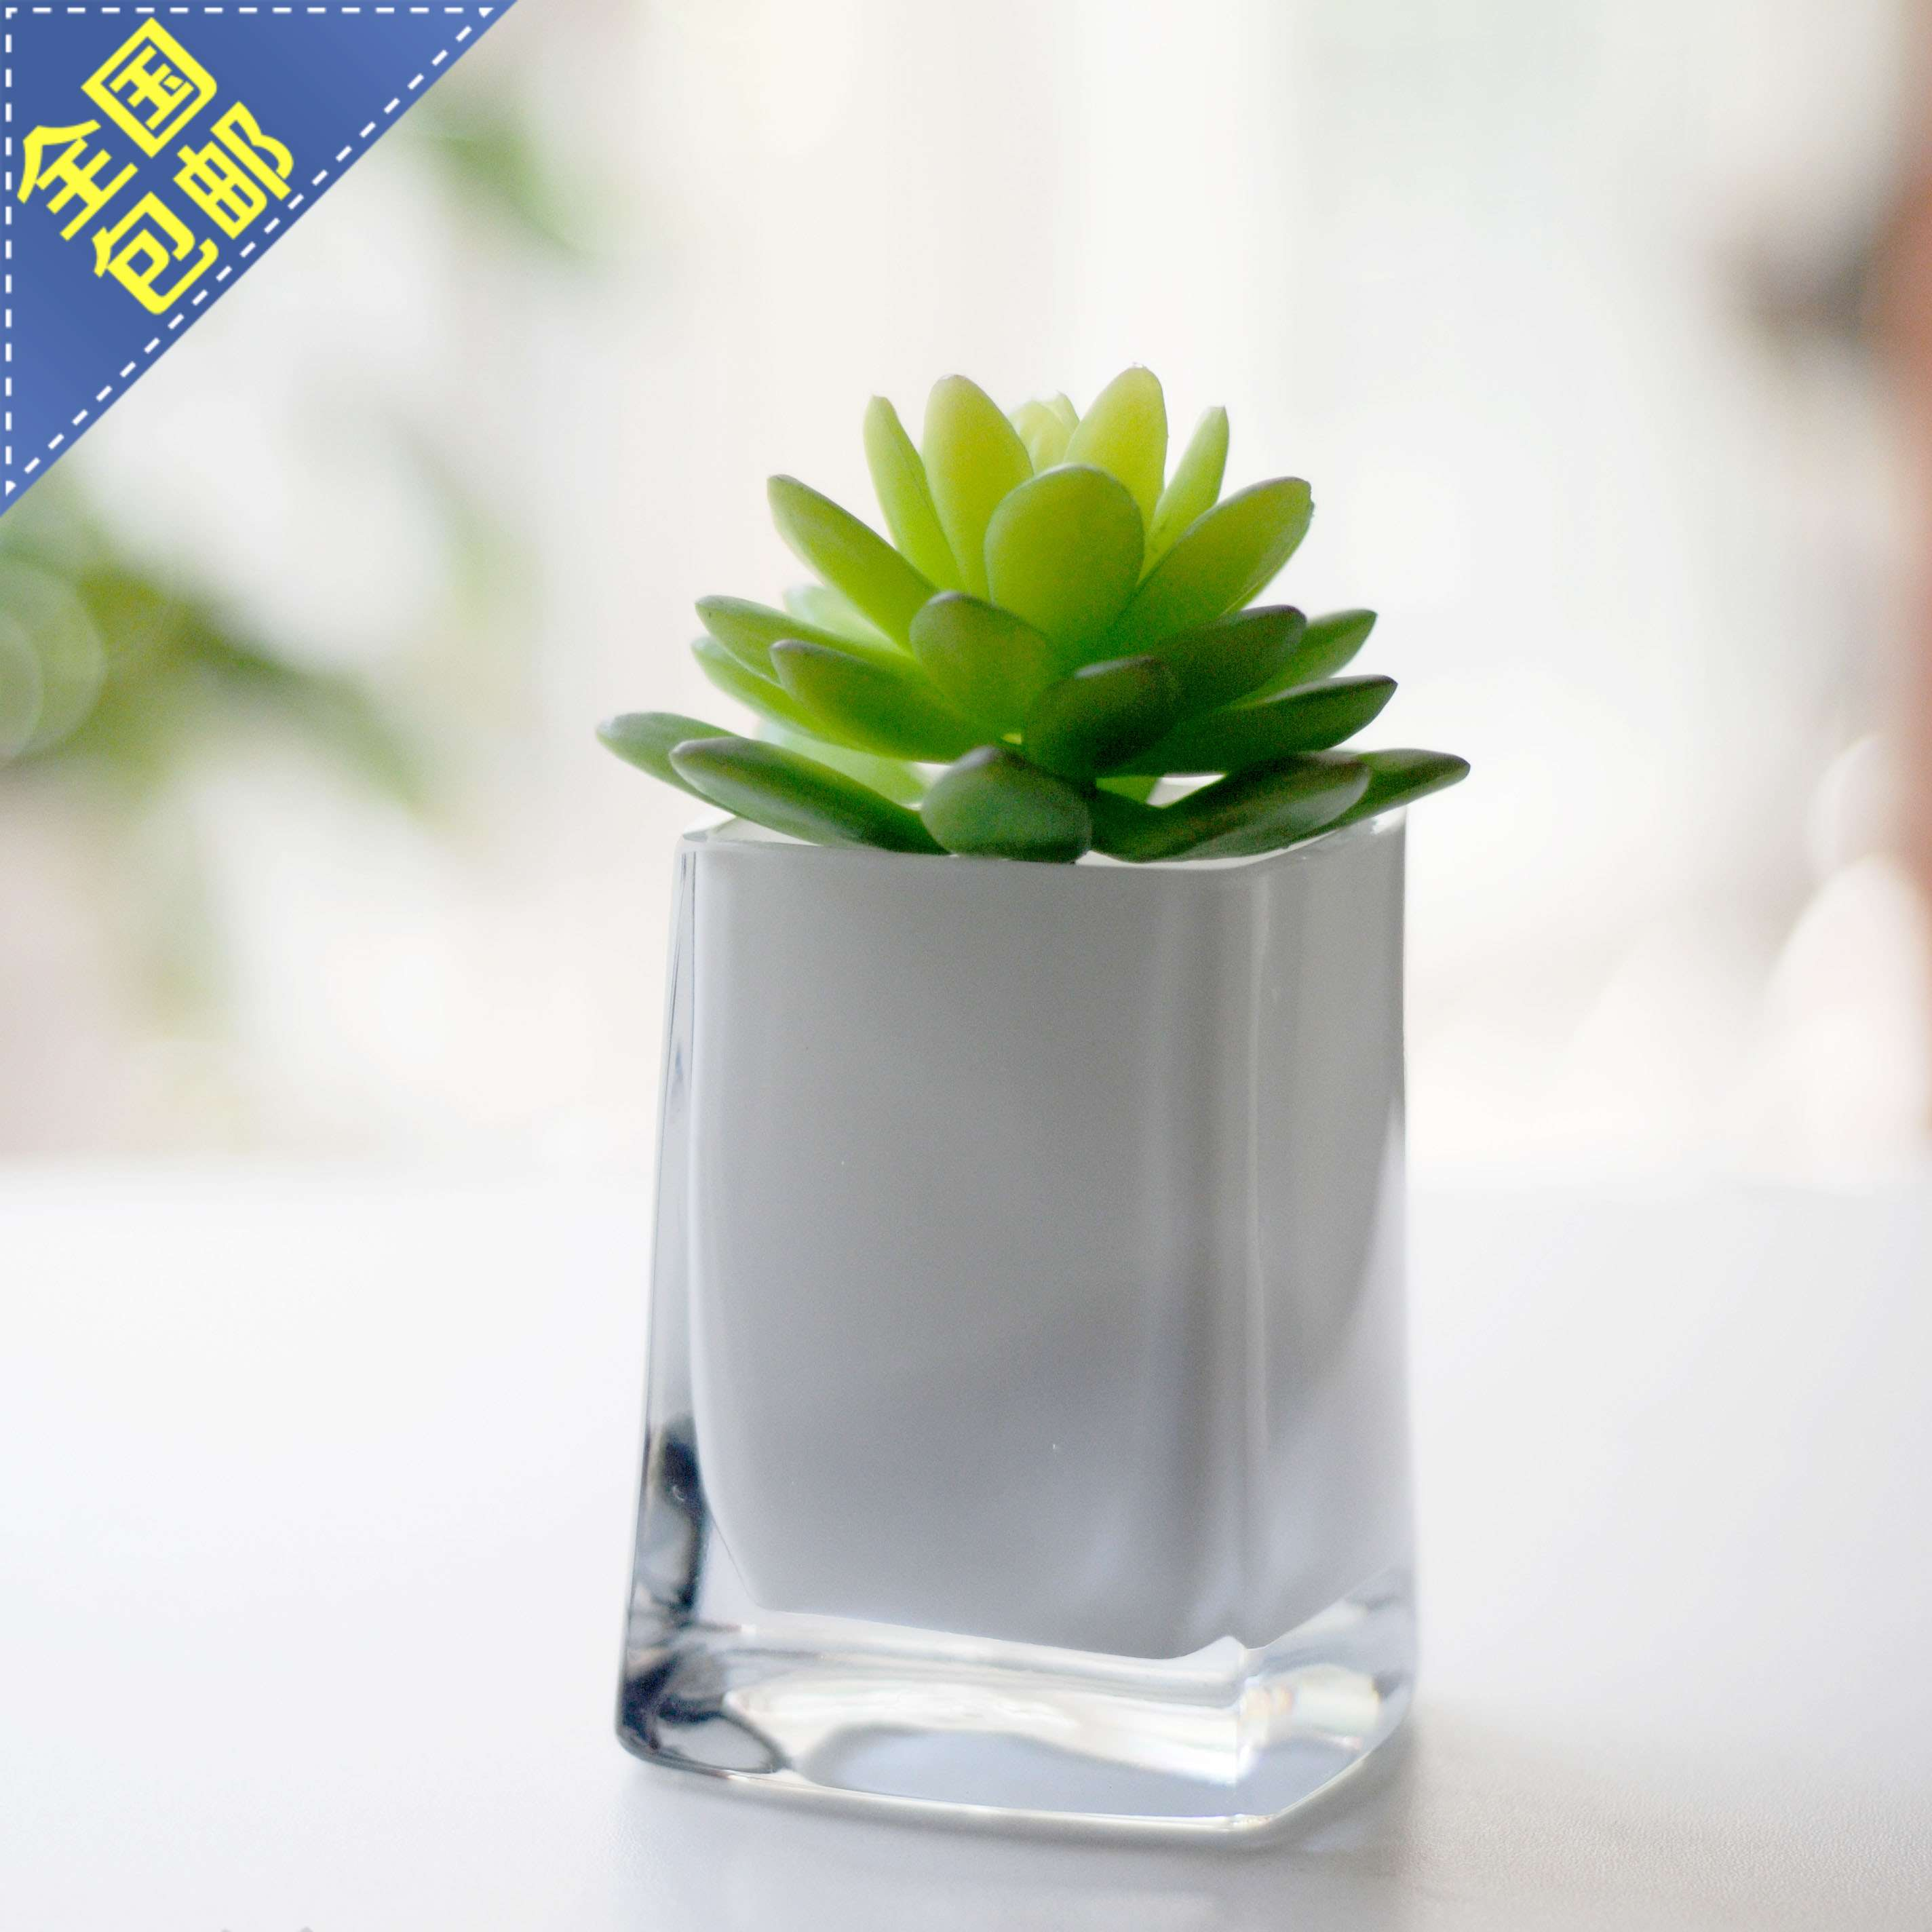 Incroyable Glass White Cup IKEA Style Small Table Countertop Flower Plant Pot Modern  Fashion Decoration Home Decor In Vases From Home U0026 Garden On Aliexpress.com  ...